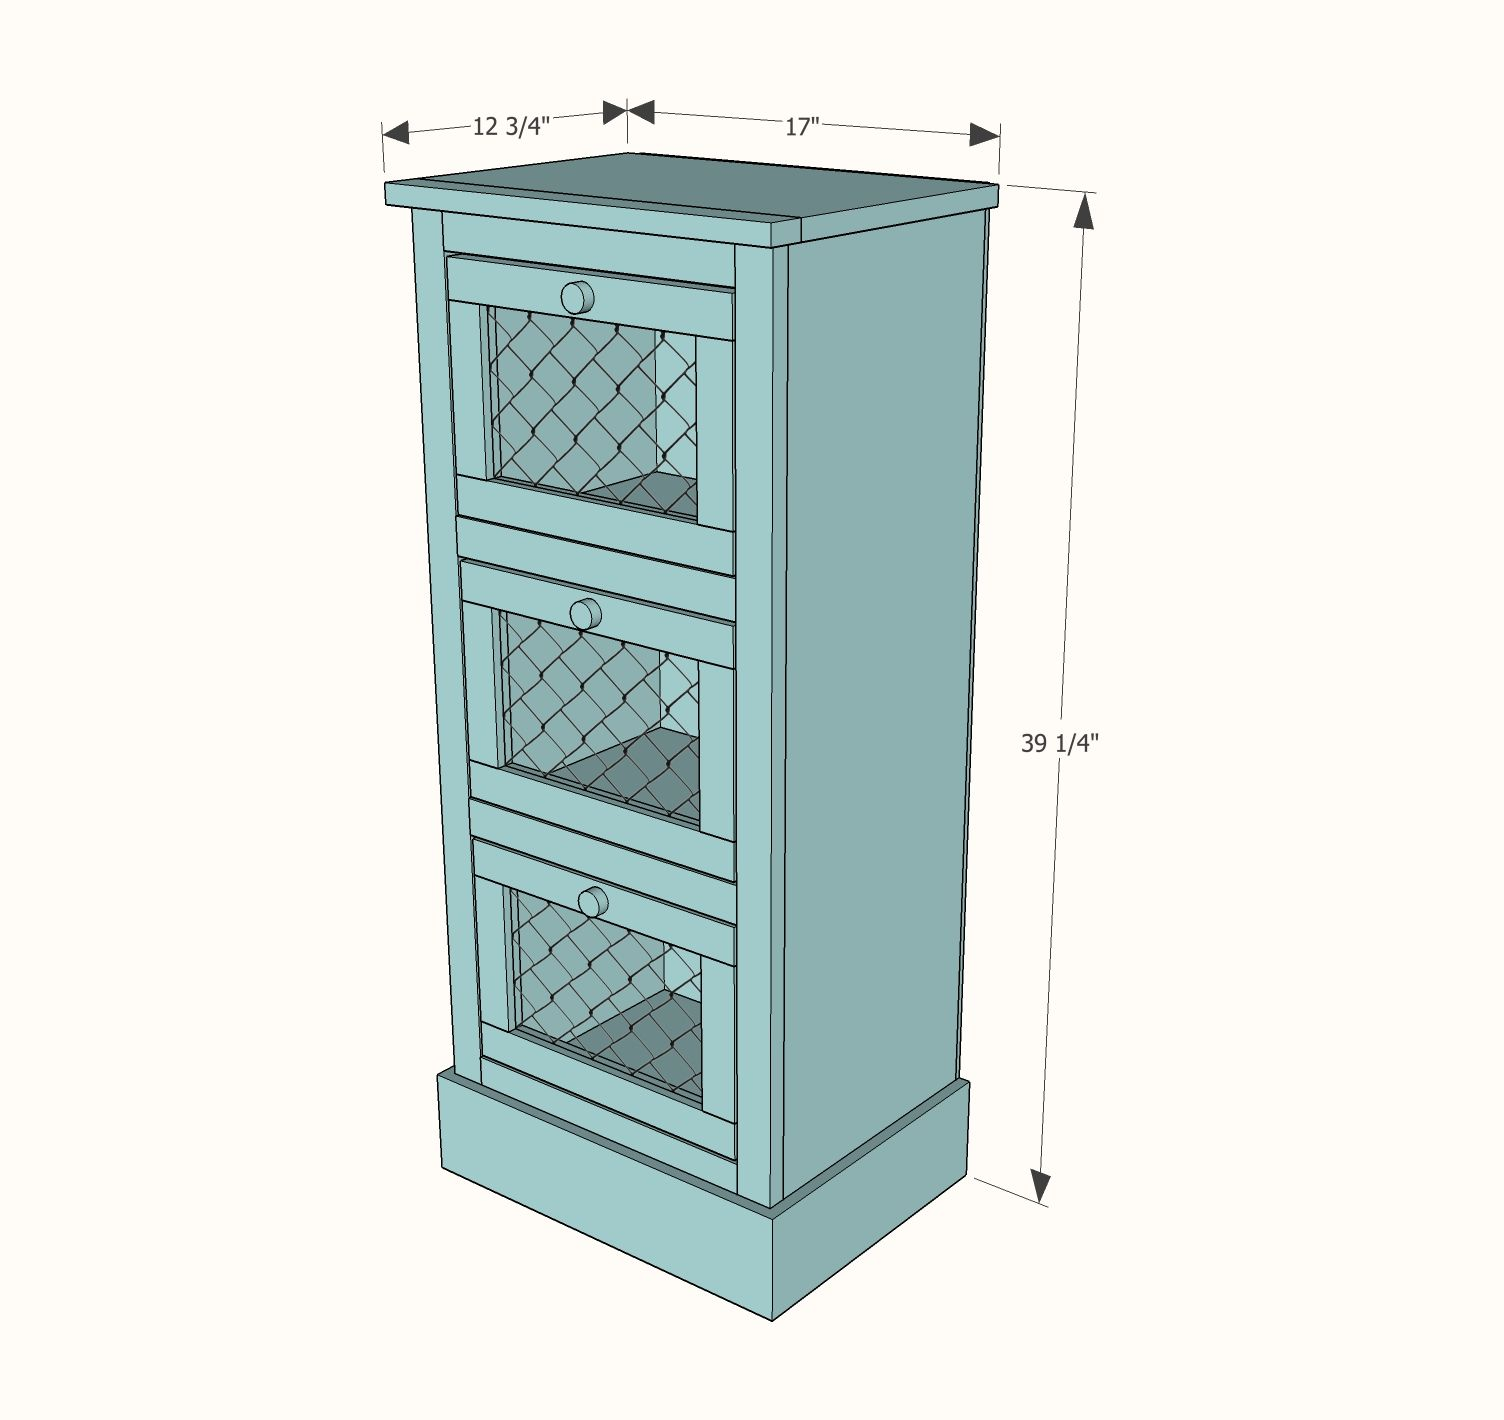 Ana White | Build a Vegetable Bin Cupboard | Free and Easy DIY ...